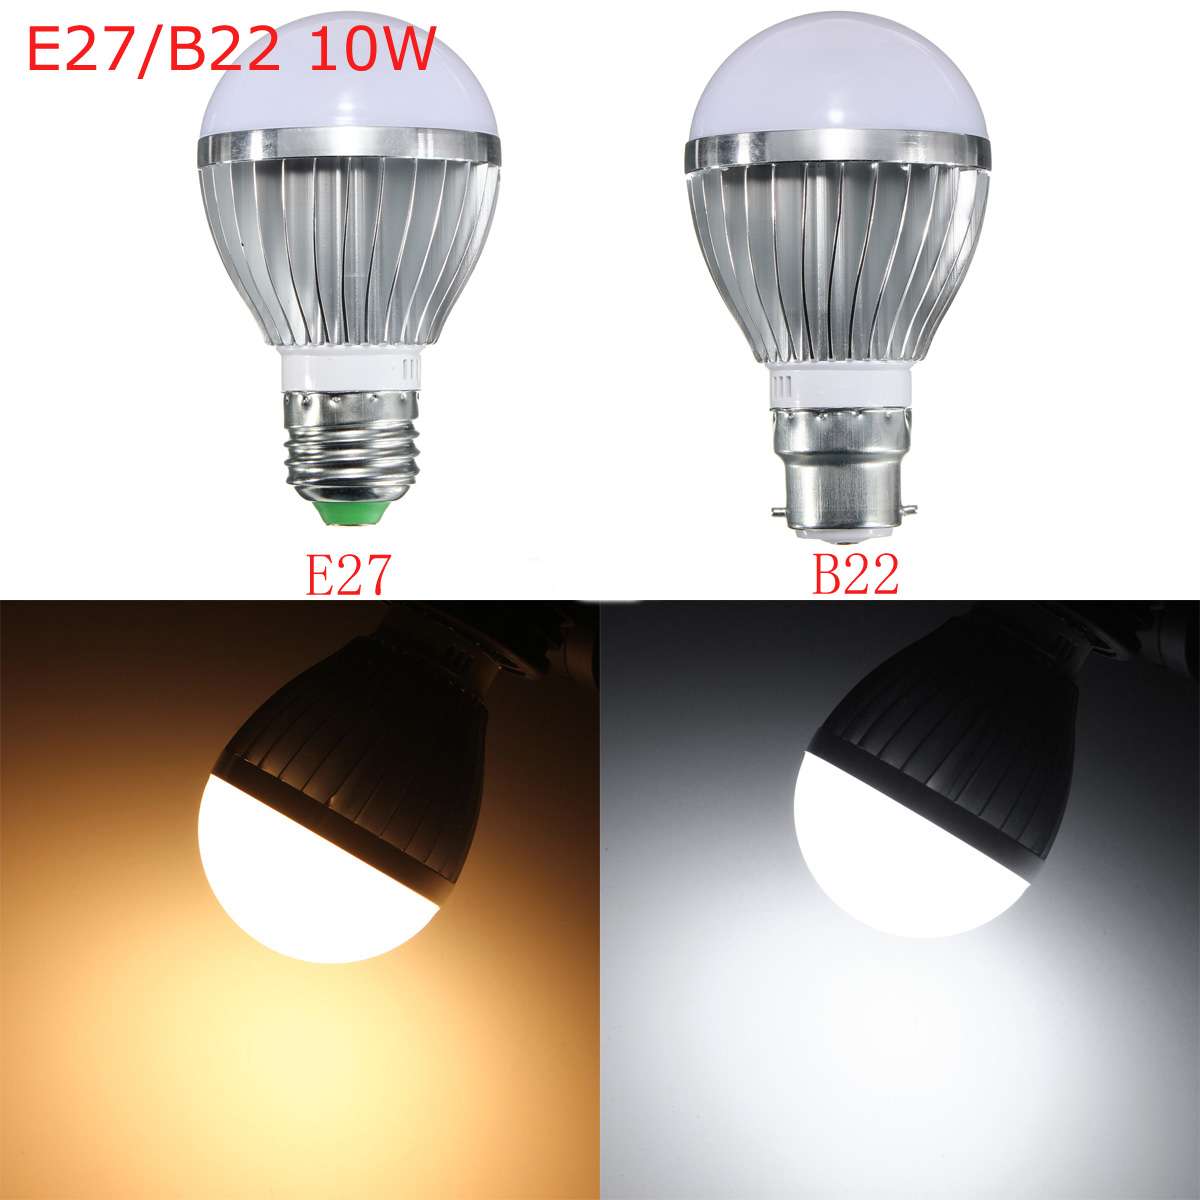 e27 b22 10w dimmable 14 smd5730 led bayonet edison bulb lamp globe light warm white ac 110 240v. Black Bedroom Furniture Sets. Home Design Ideas